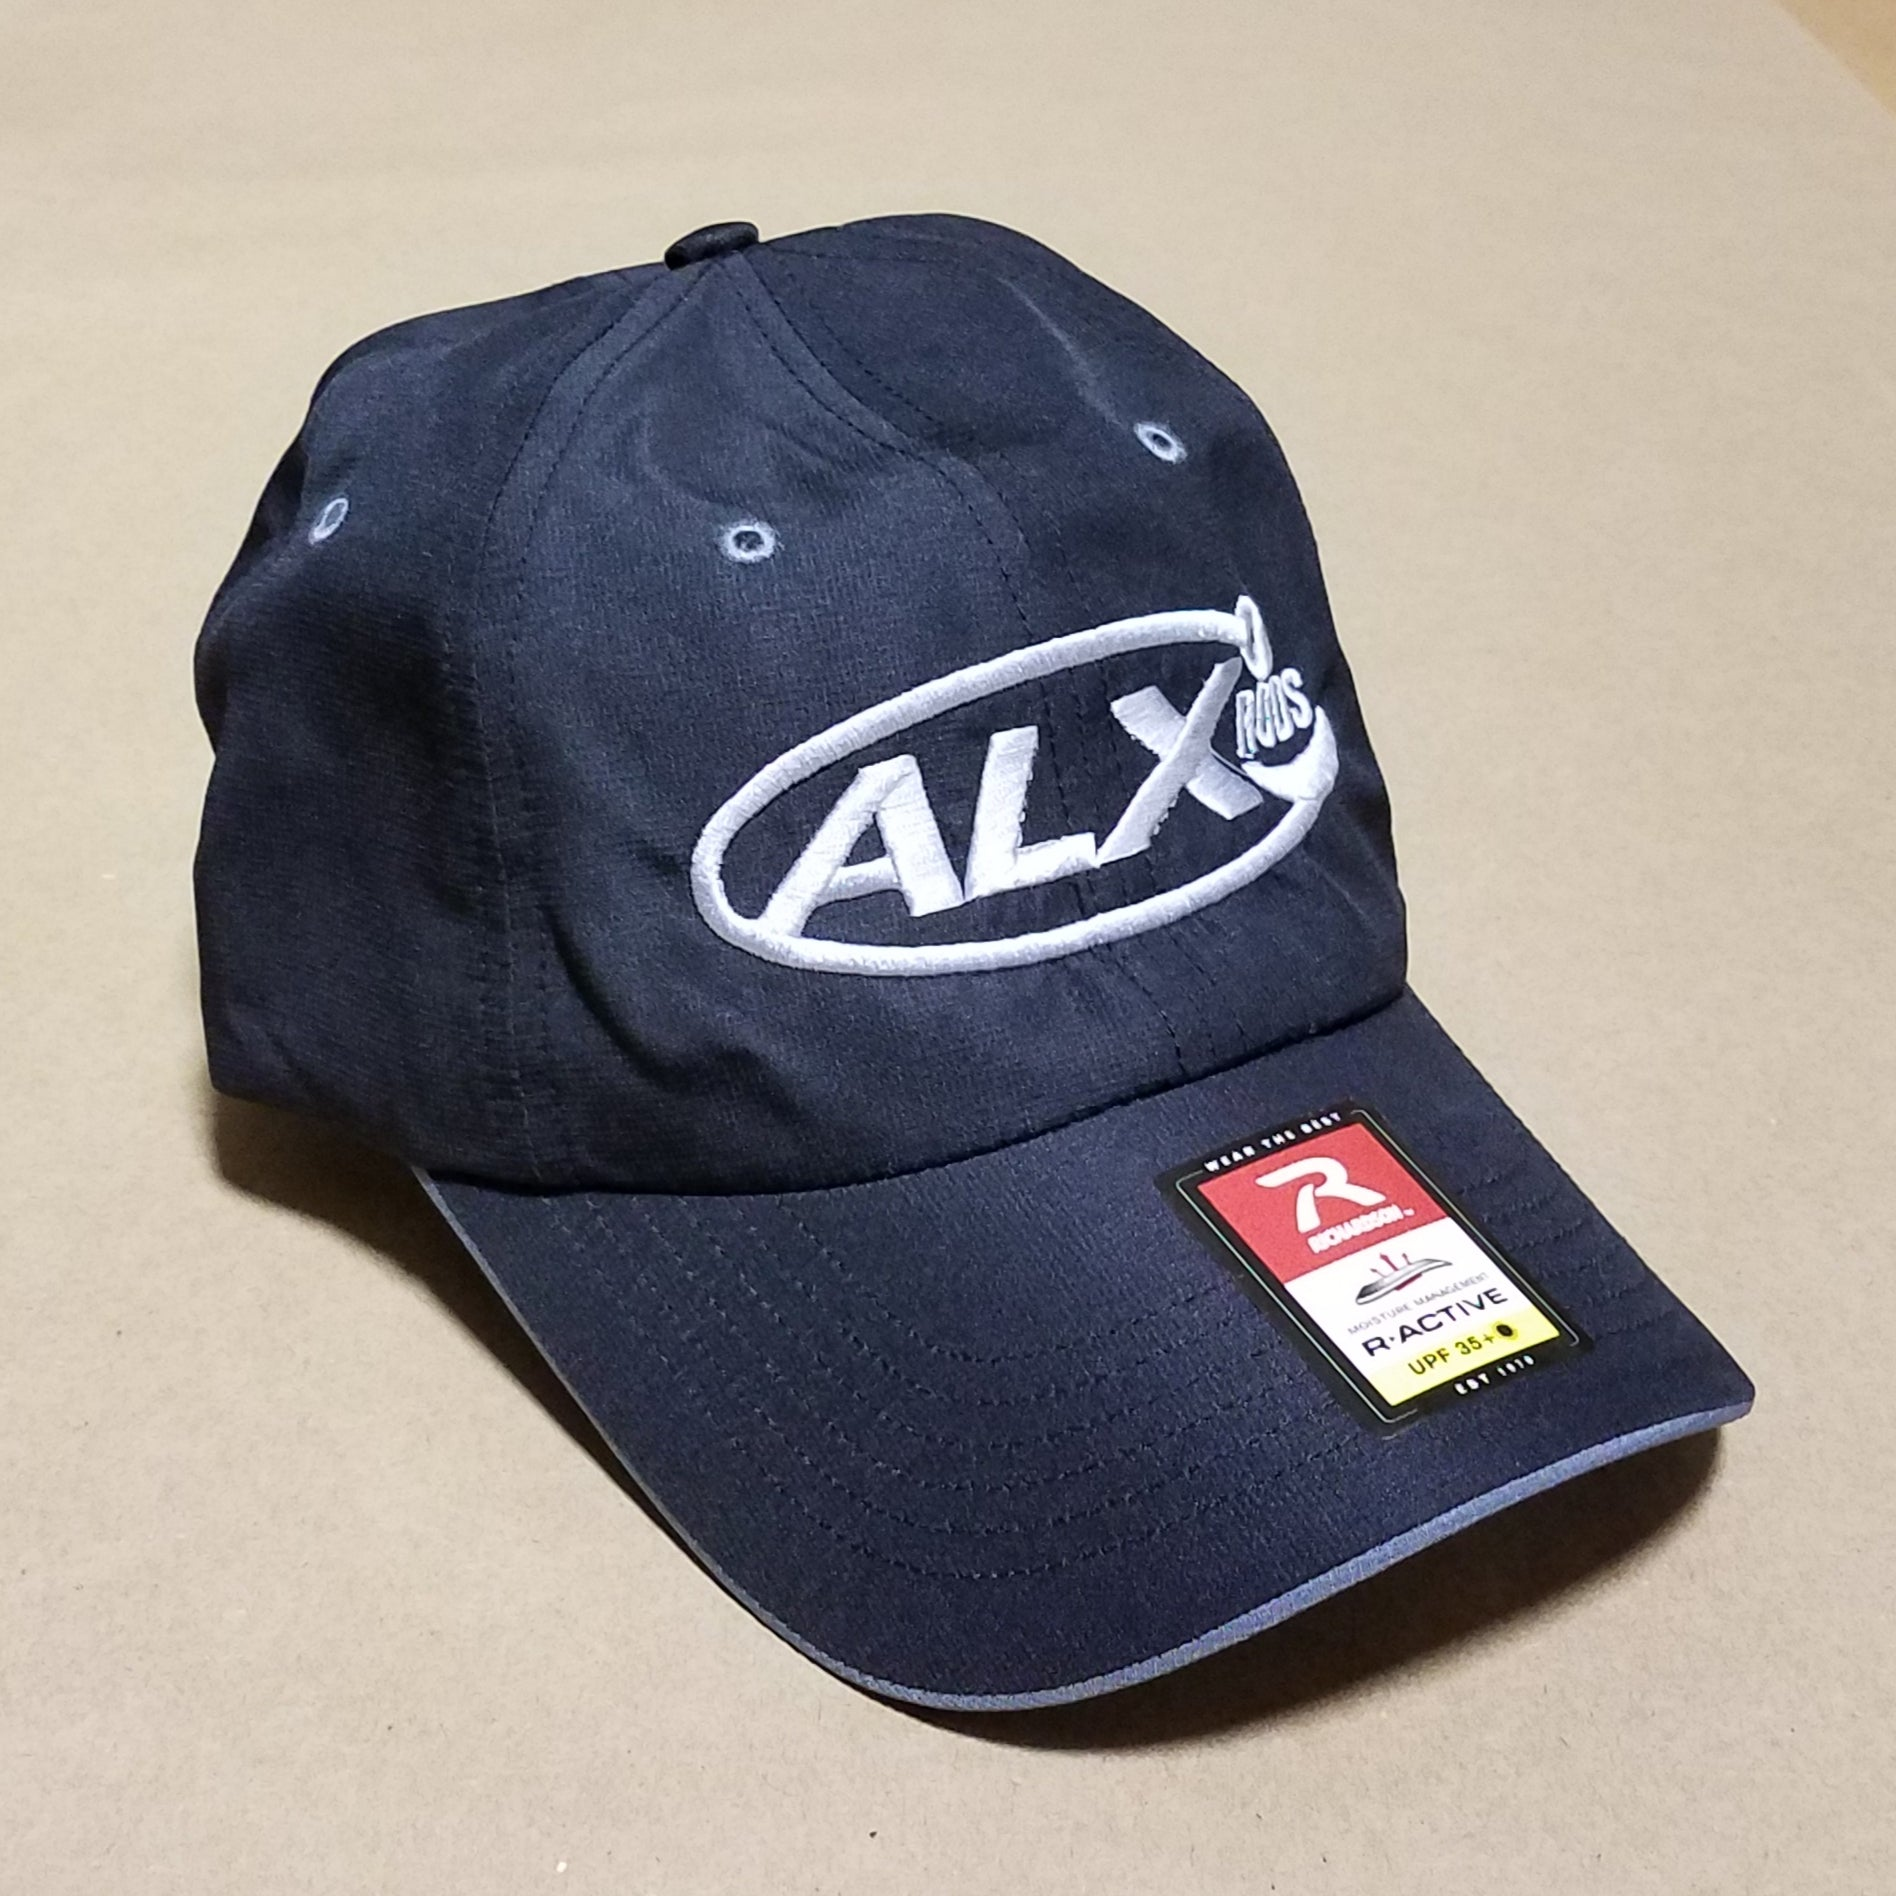 ALX Solar Active StayDry UPF35 Cap - Black